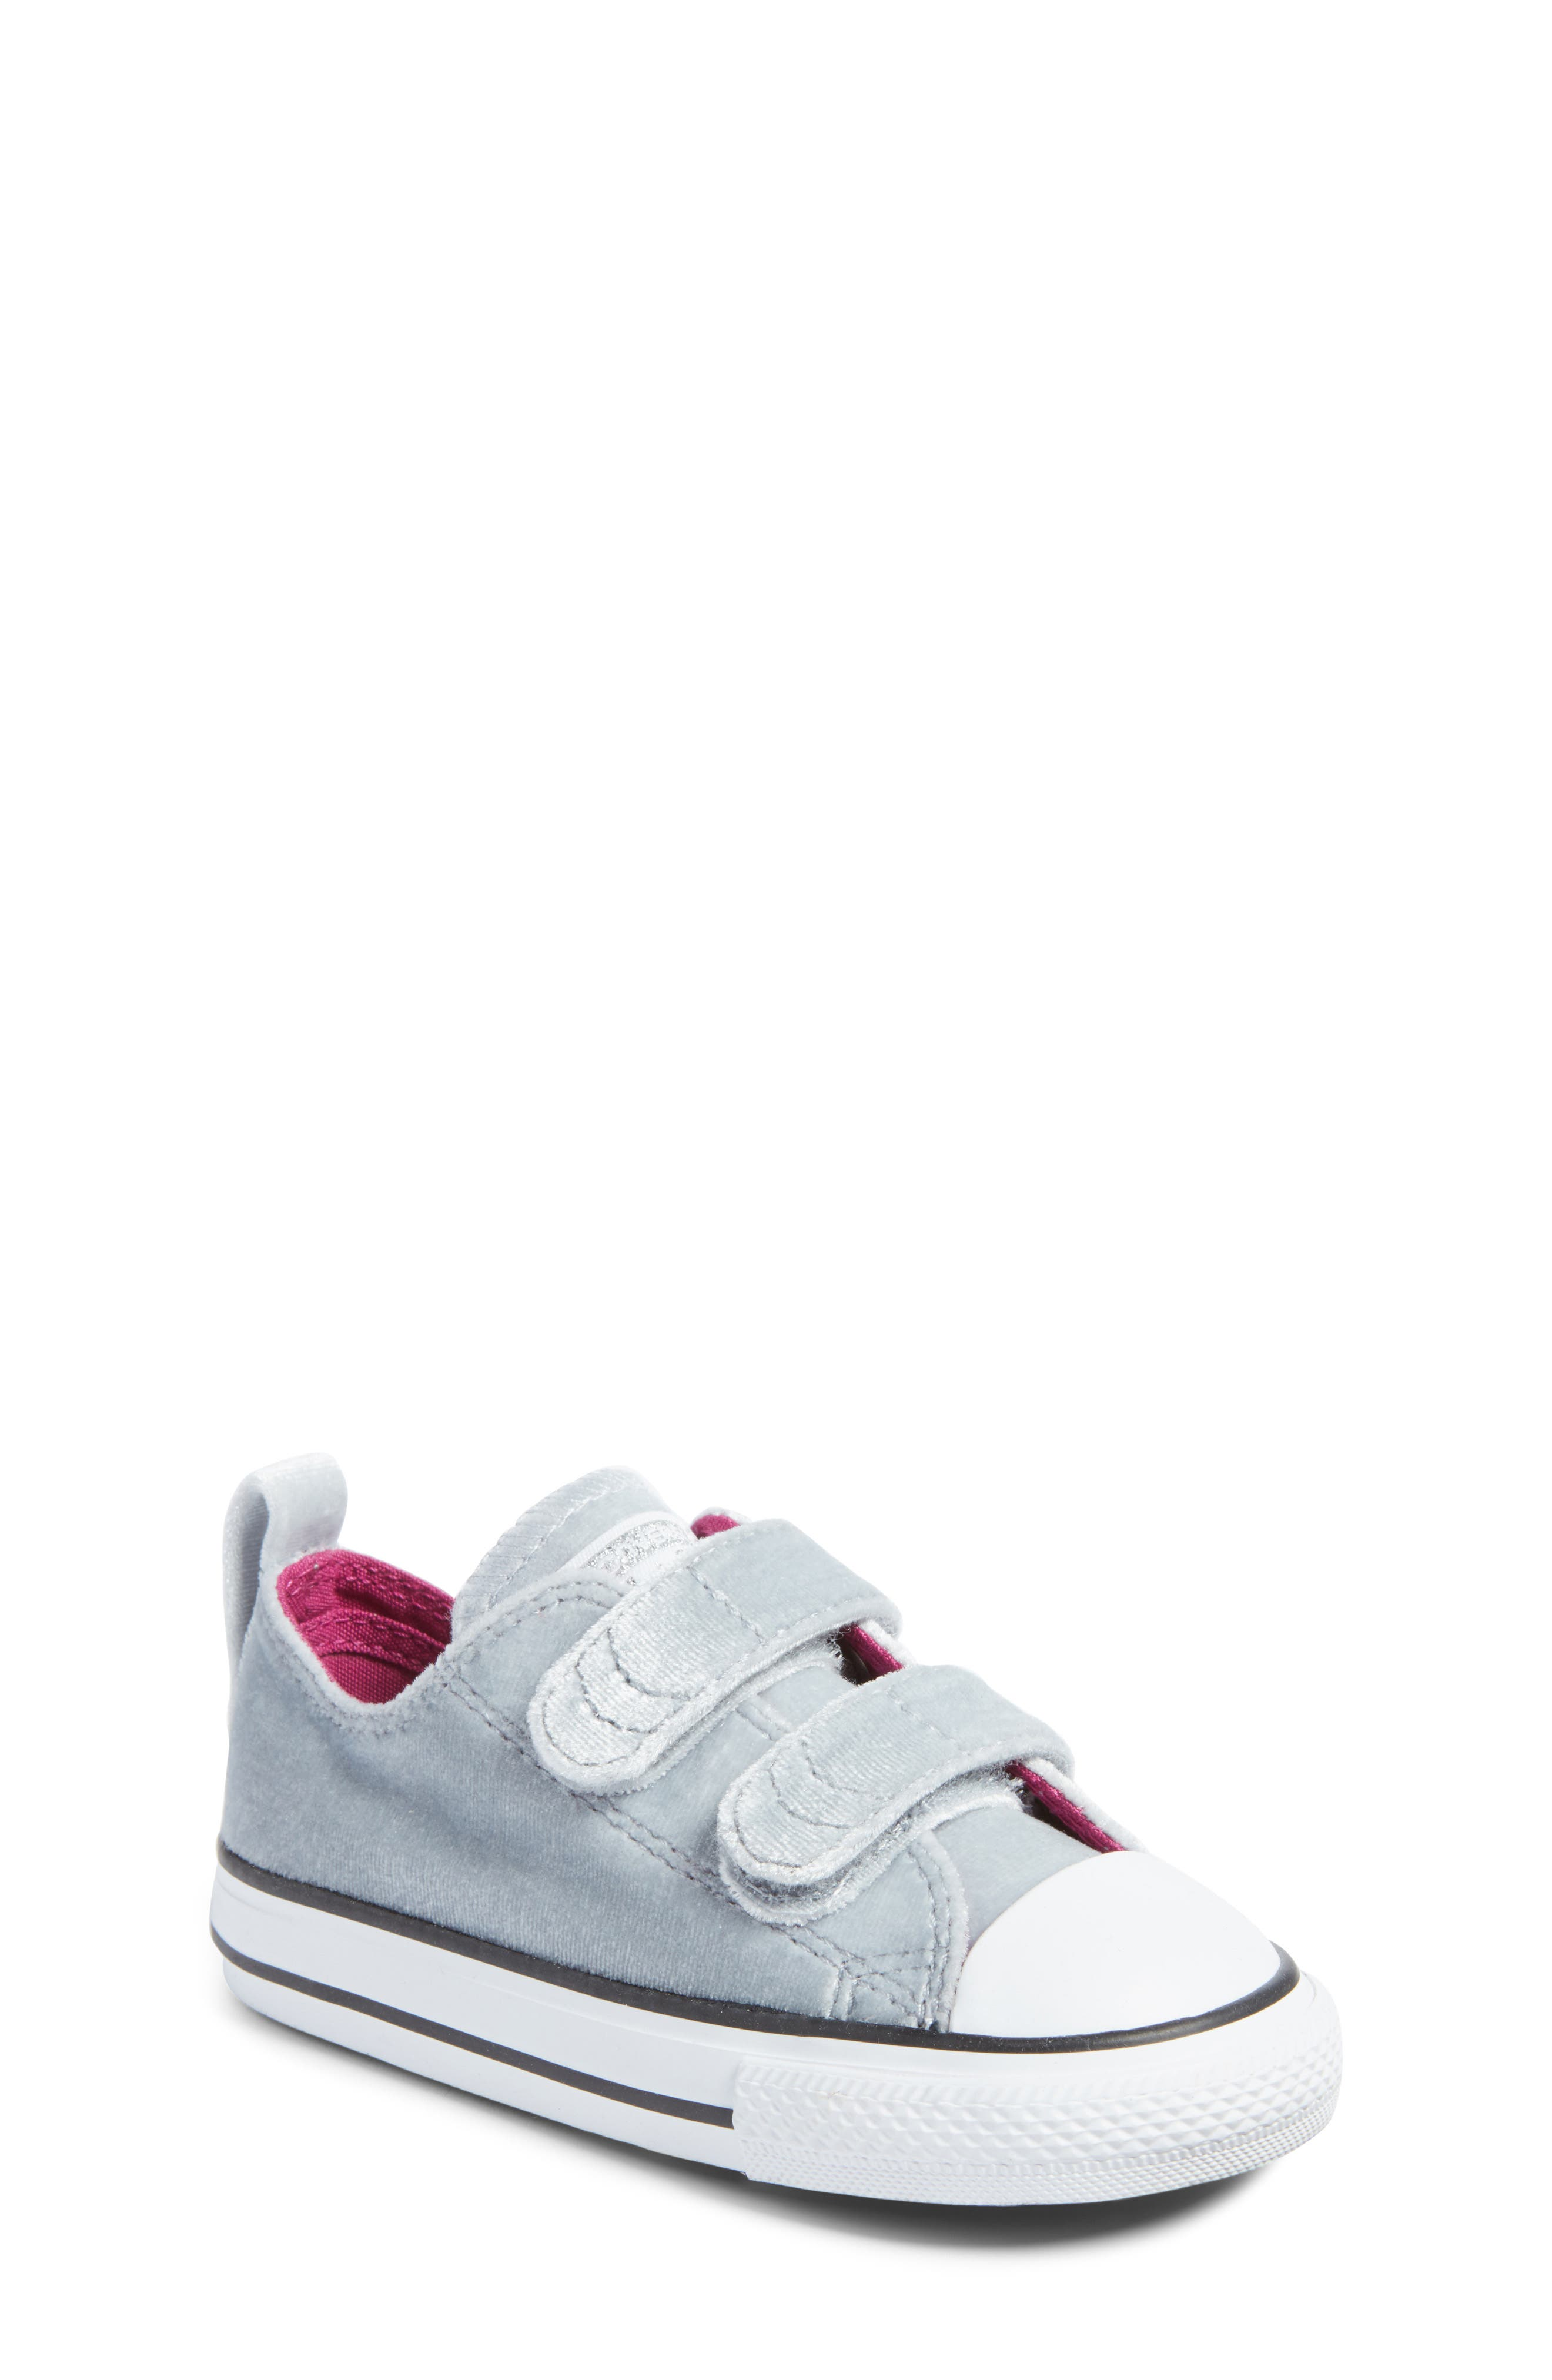 converse kids shoes. converse chuck taylor® all star® 2v velvet low top sneaker (baby, walker kids shoes